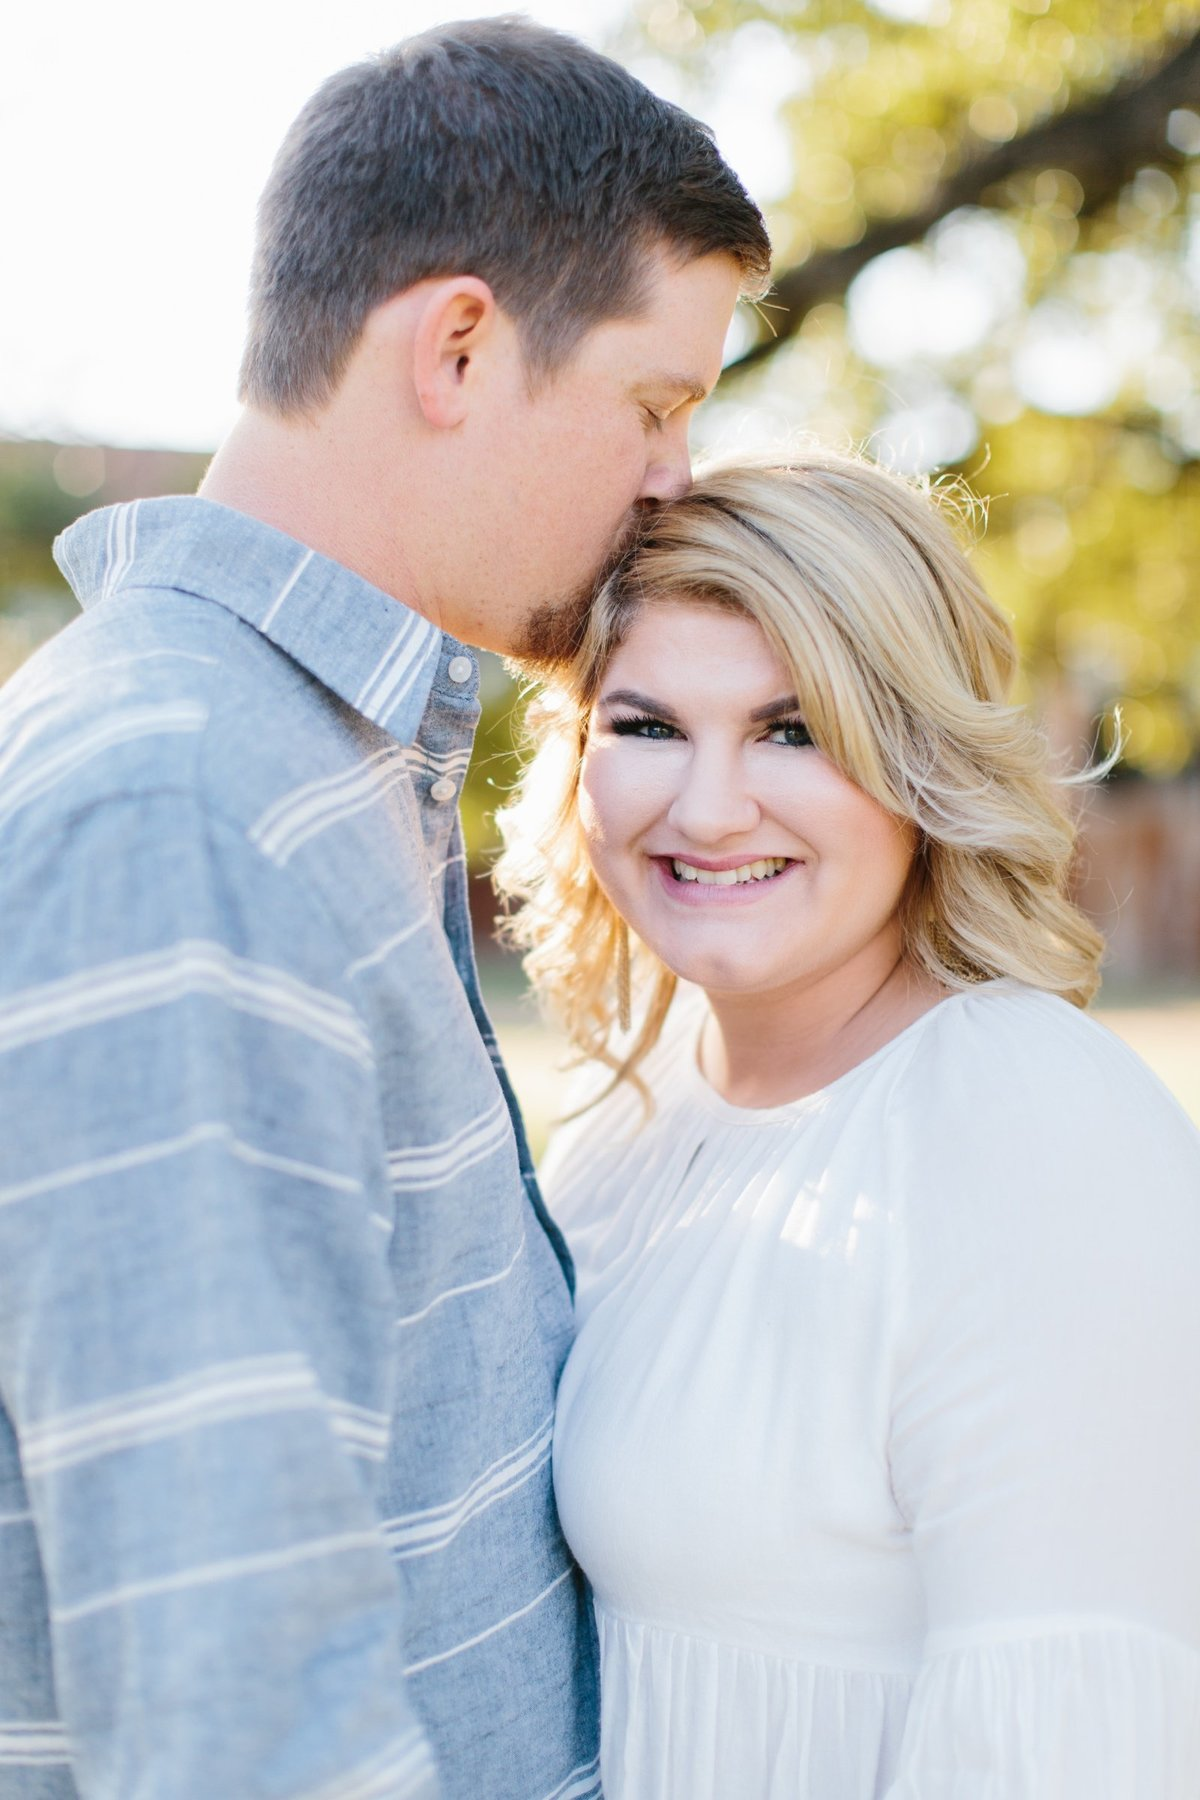 Film Engagement Session in Gruene, Texas. Bride wearing white flowy top, groom is wearing light blue button up.